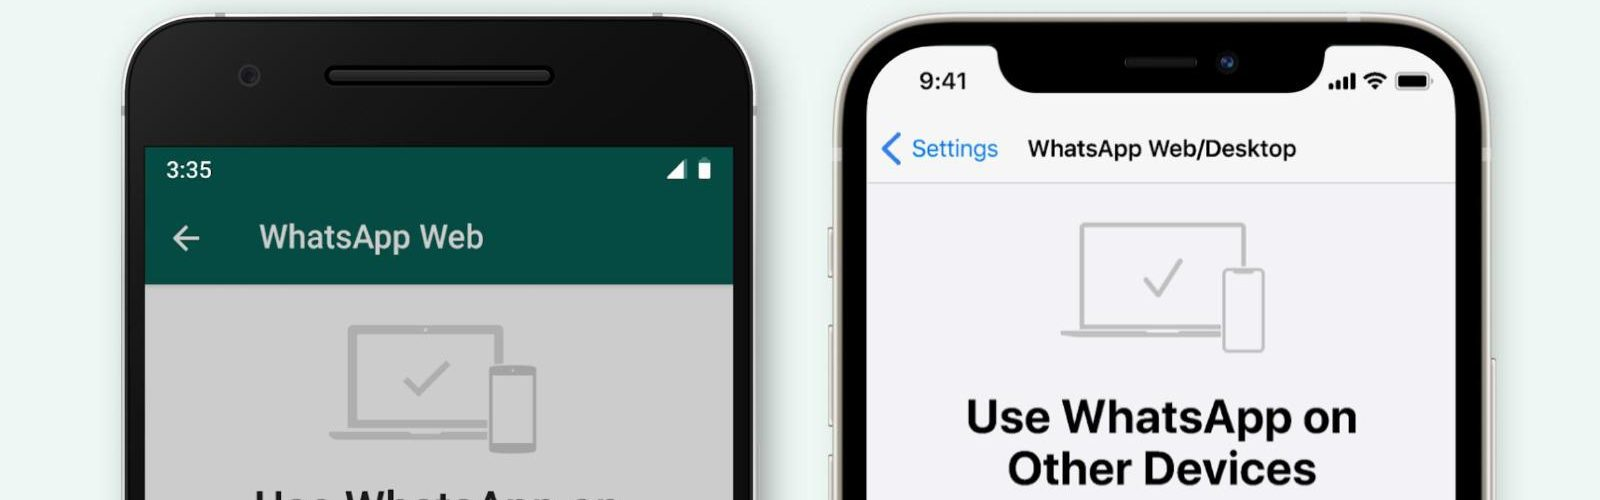 Whatsapp enrolls security feature to web and desktops